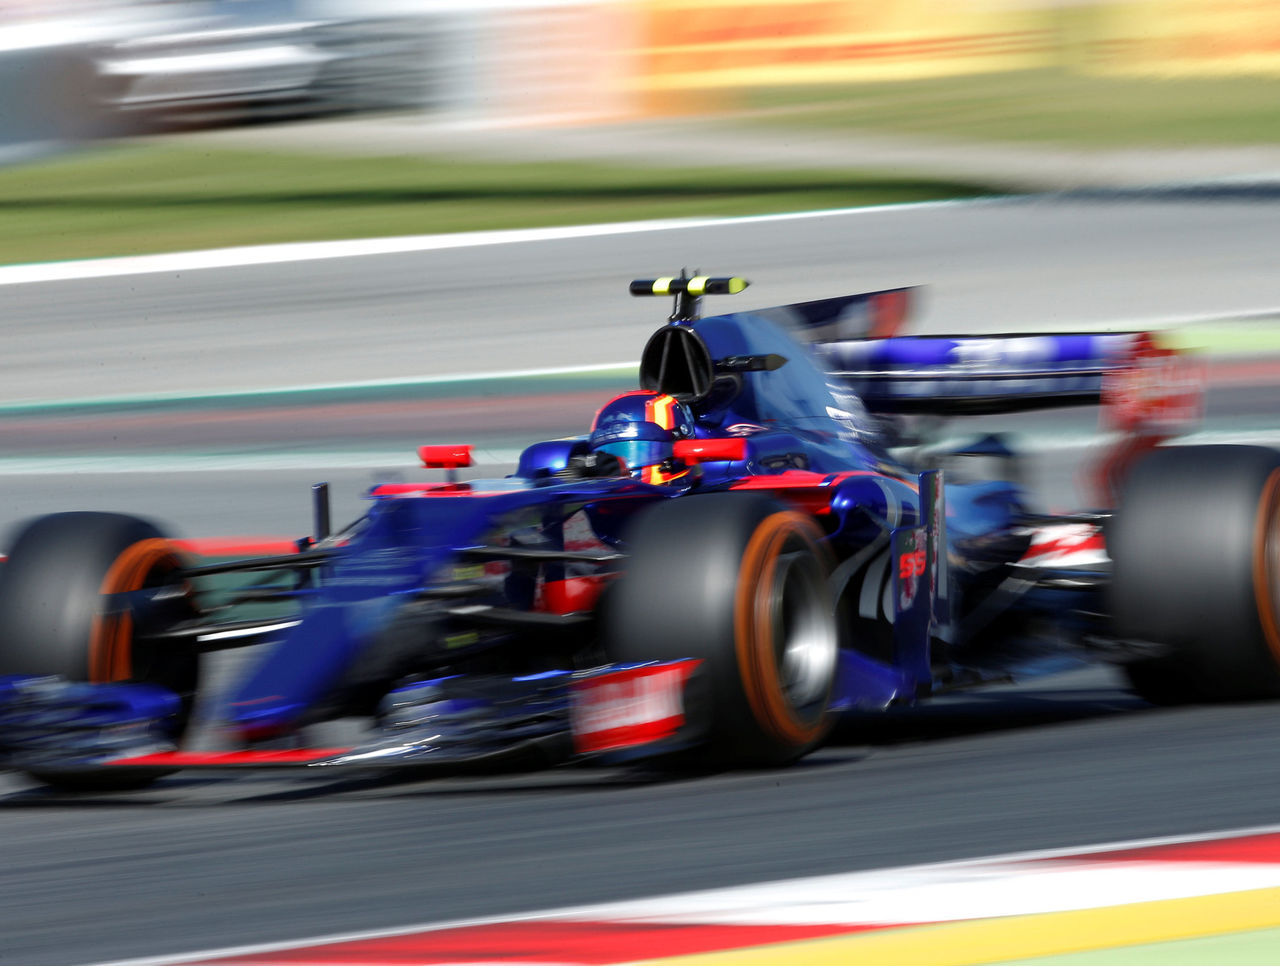 Cropped 2017 05 12t111232z 126838891 rc13e9324ff0 rtrmadp 3 motor f1 spain